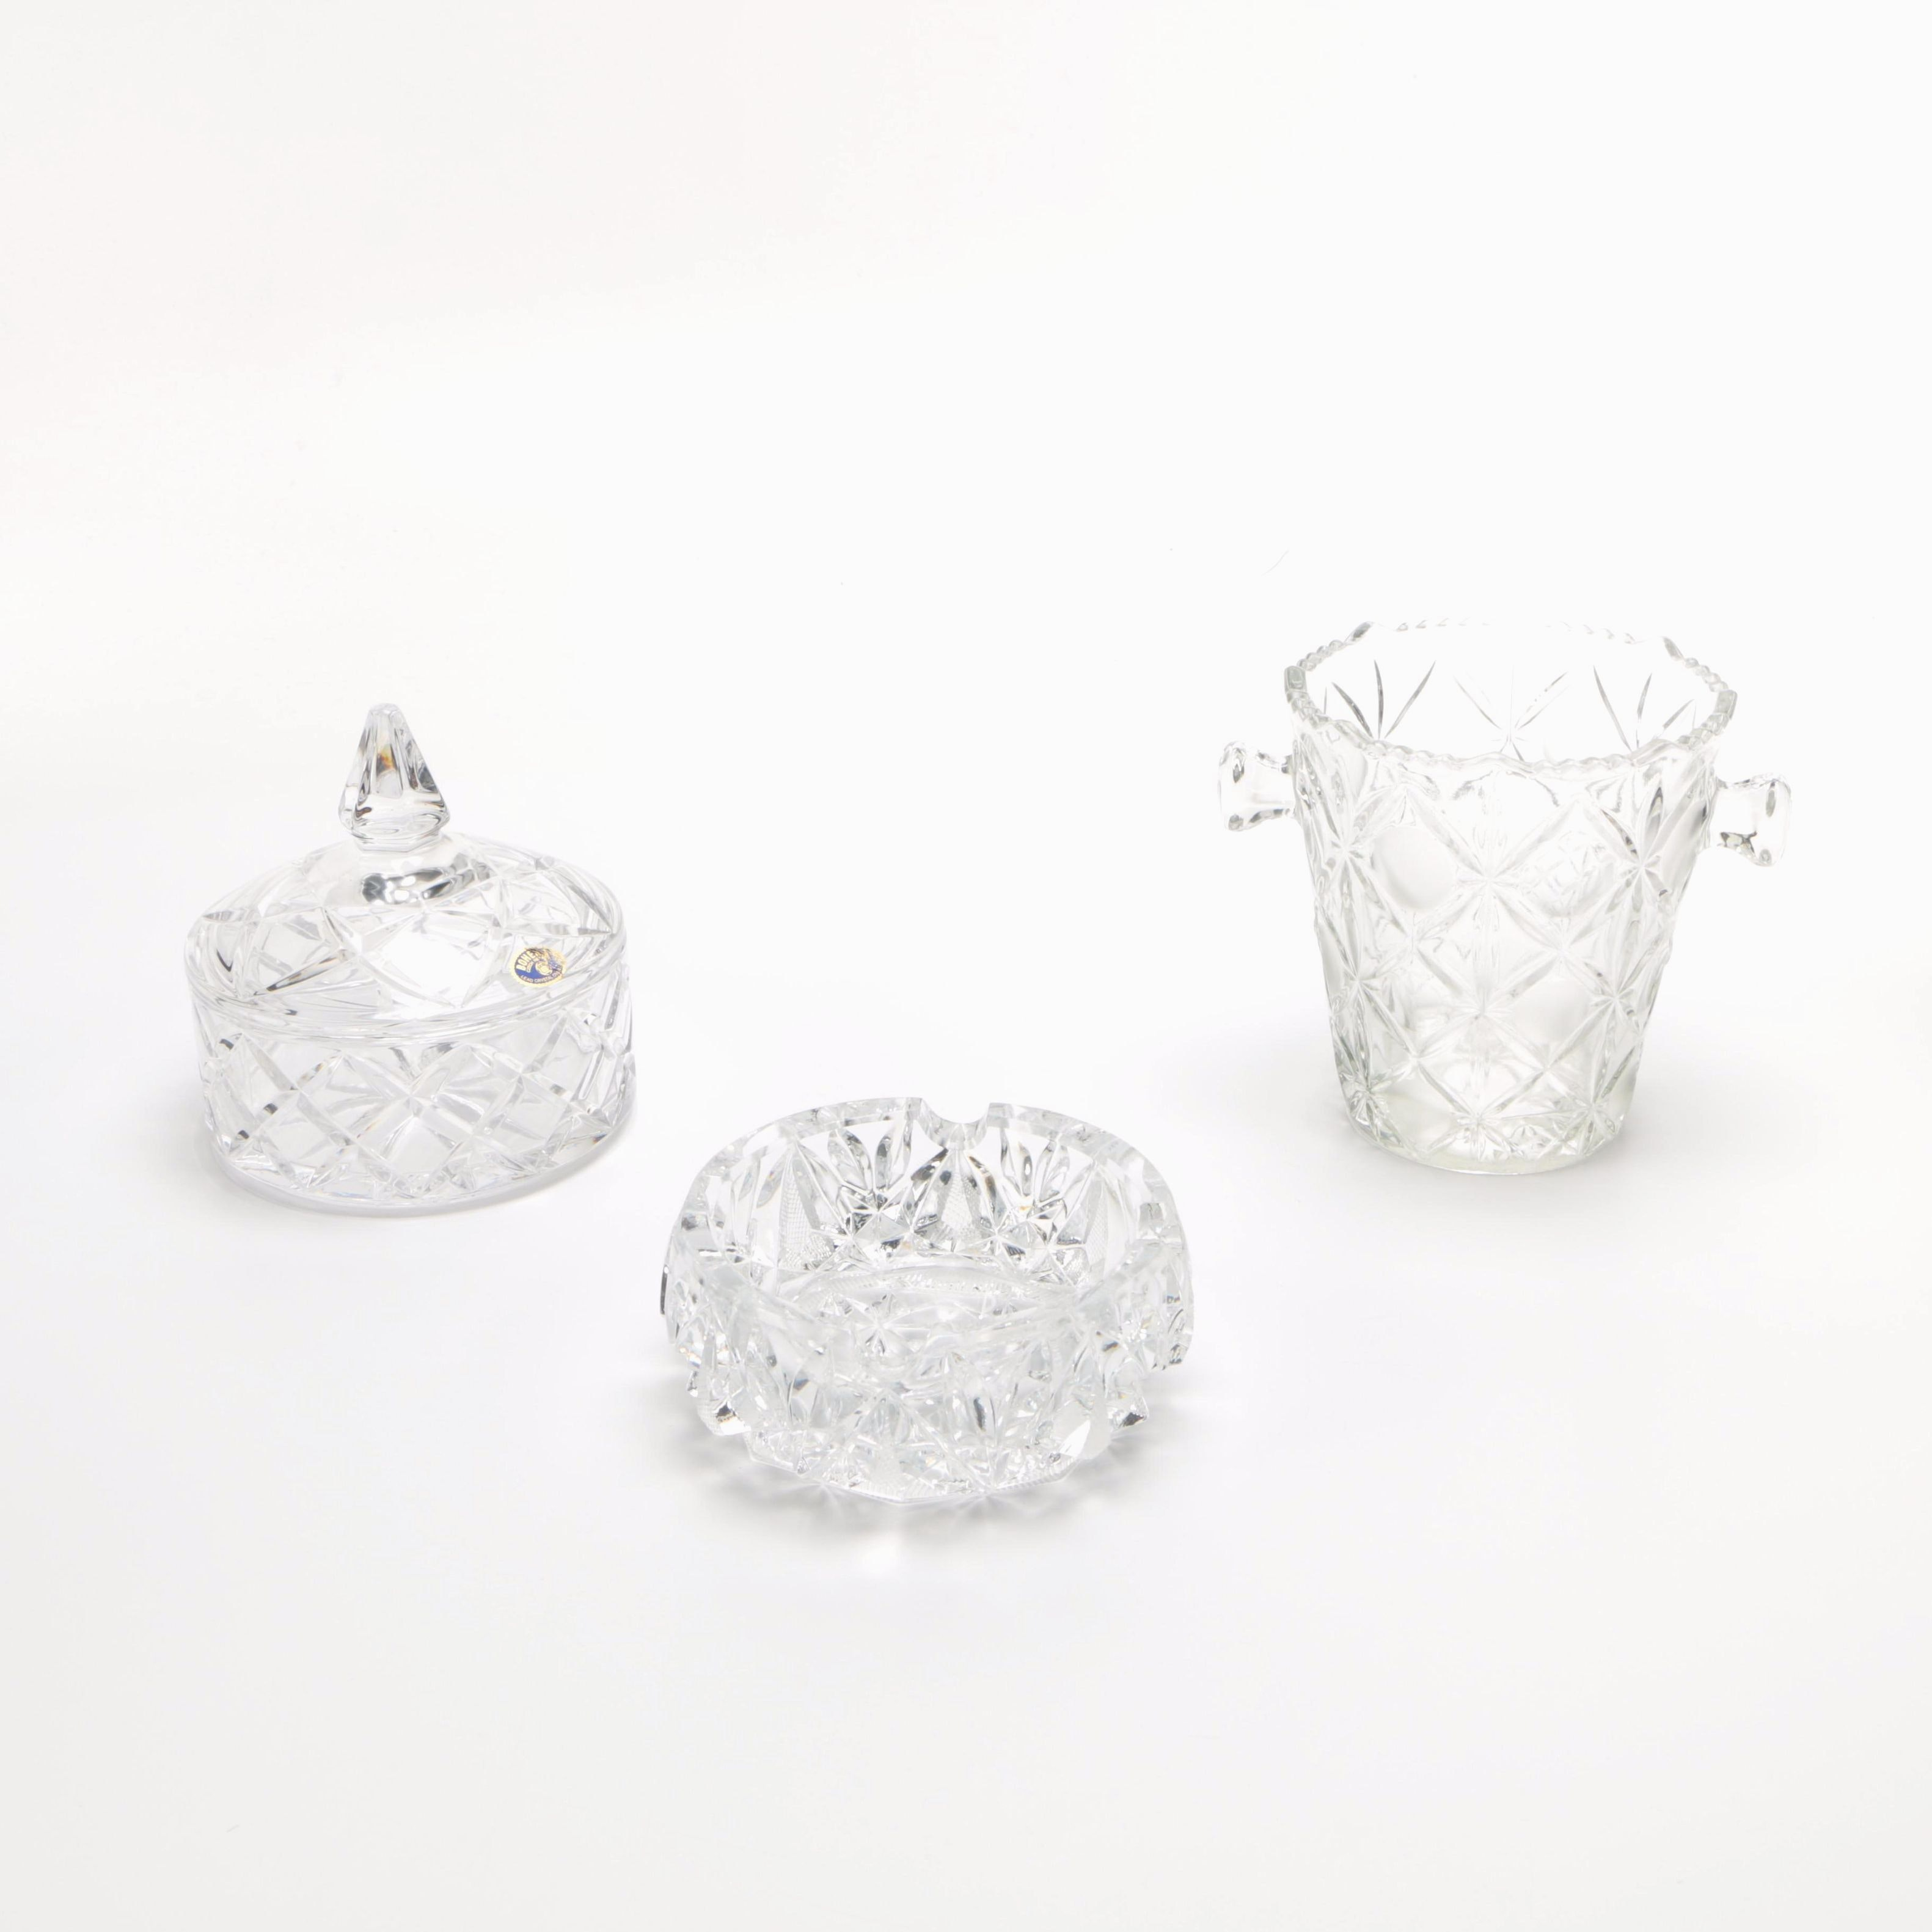 Crystal Glass Lidded Dish, Ashtray and Vase